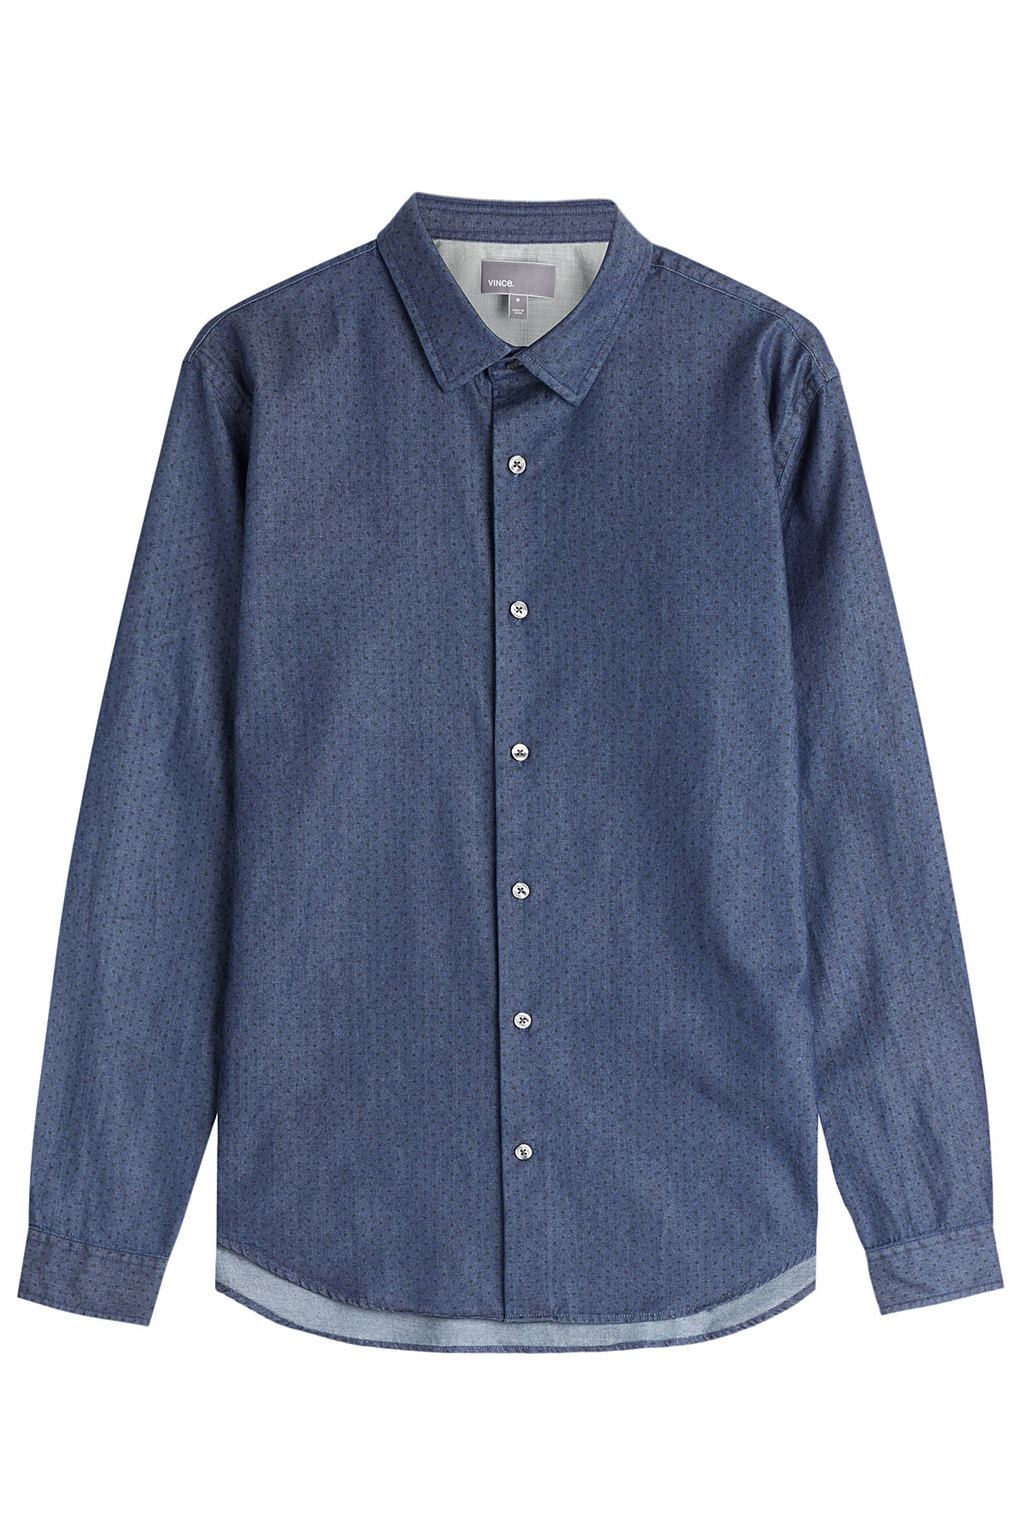 Microdot Chambray Button Down Blue - neckline: shirt collar/peter pan/zip with opening; pattern: plain; style: shirt; predominant colour: denim; occasions: casual, creative work; length: standard; fibres: cotton - 100%; fit: straight cut; sleeve length: long sleeve; sleeve style: standard; texture group: cotton feel fabrics; pattern type: fabric; season: a/w 2015; wardrobe: highlight